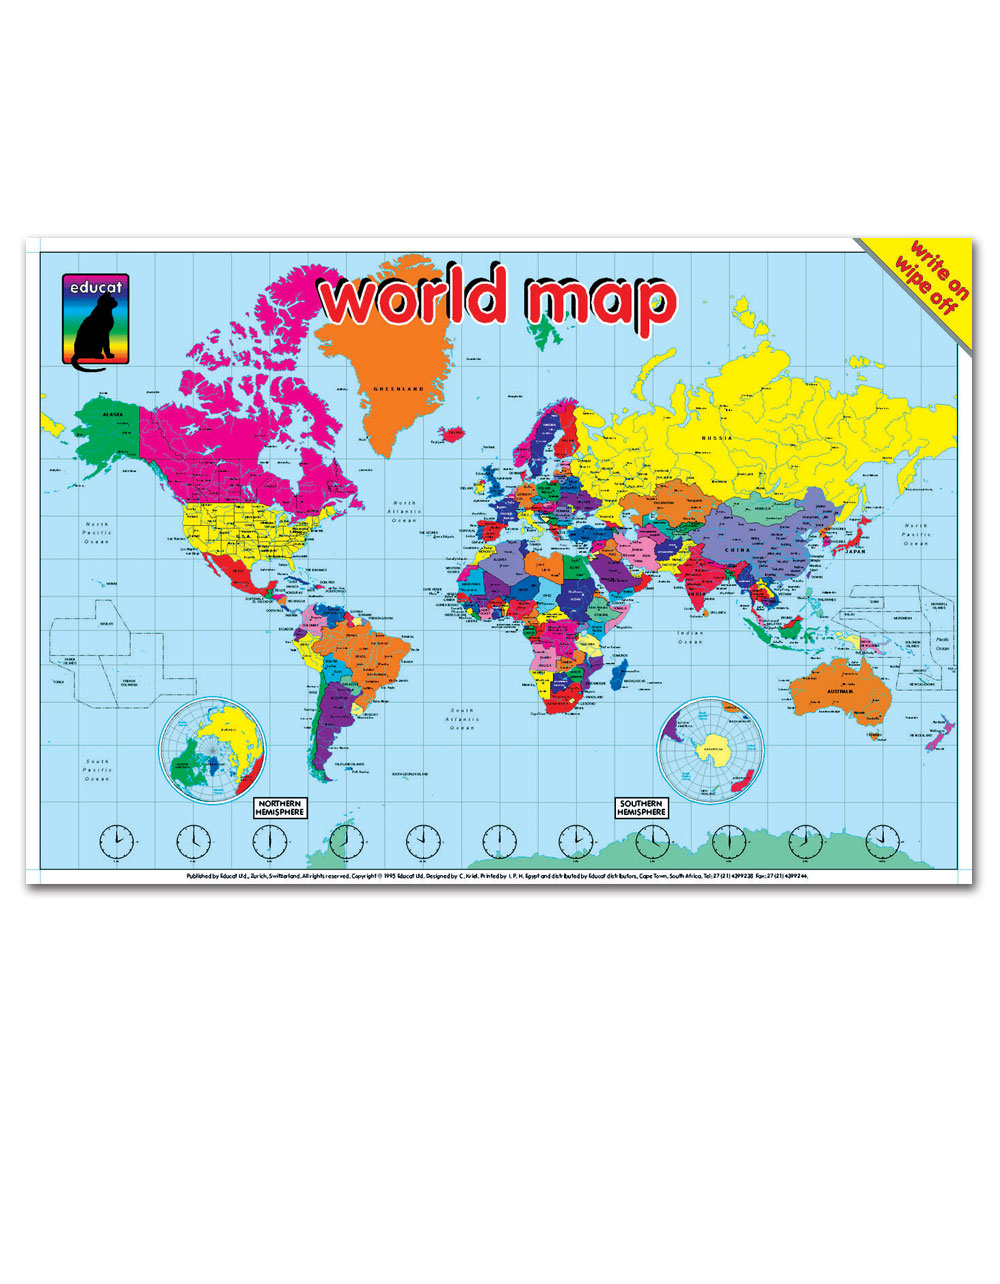 Silverleaf poster design 2 world map poster gumiabroncs Images